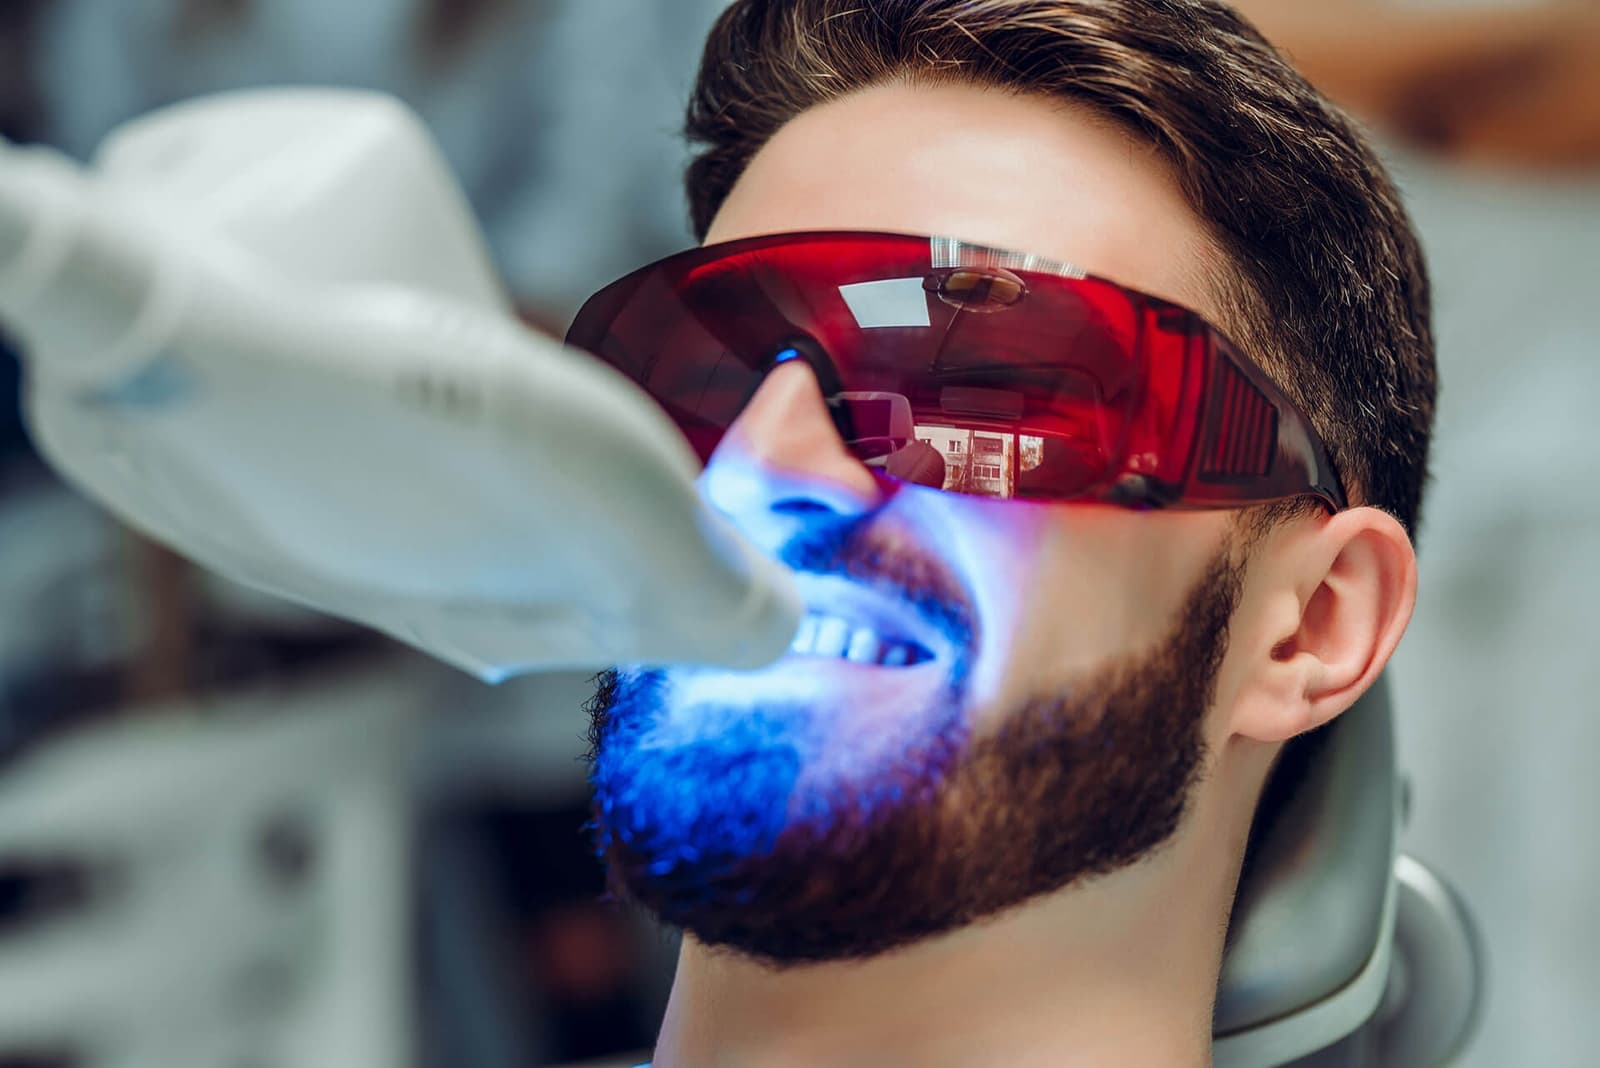 Does Laser Teeth Whitening Have Any Side Effects?